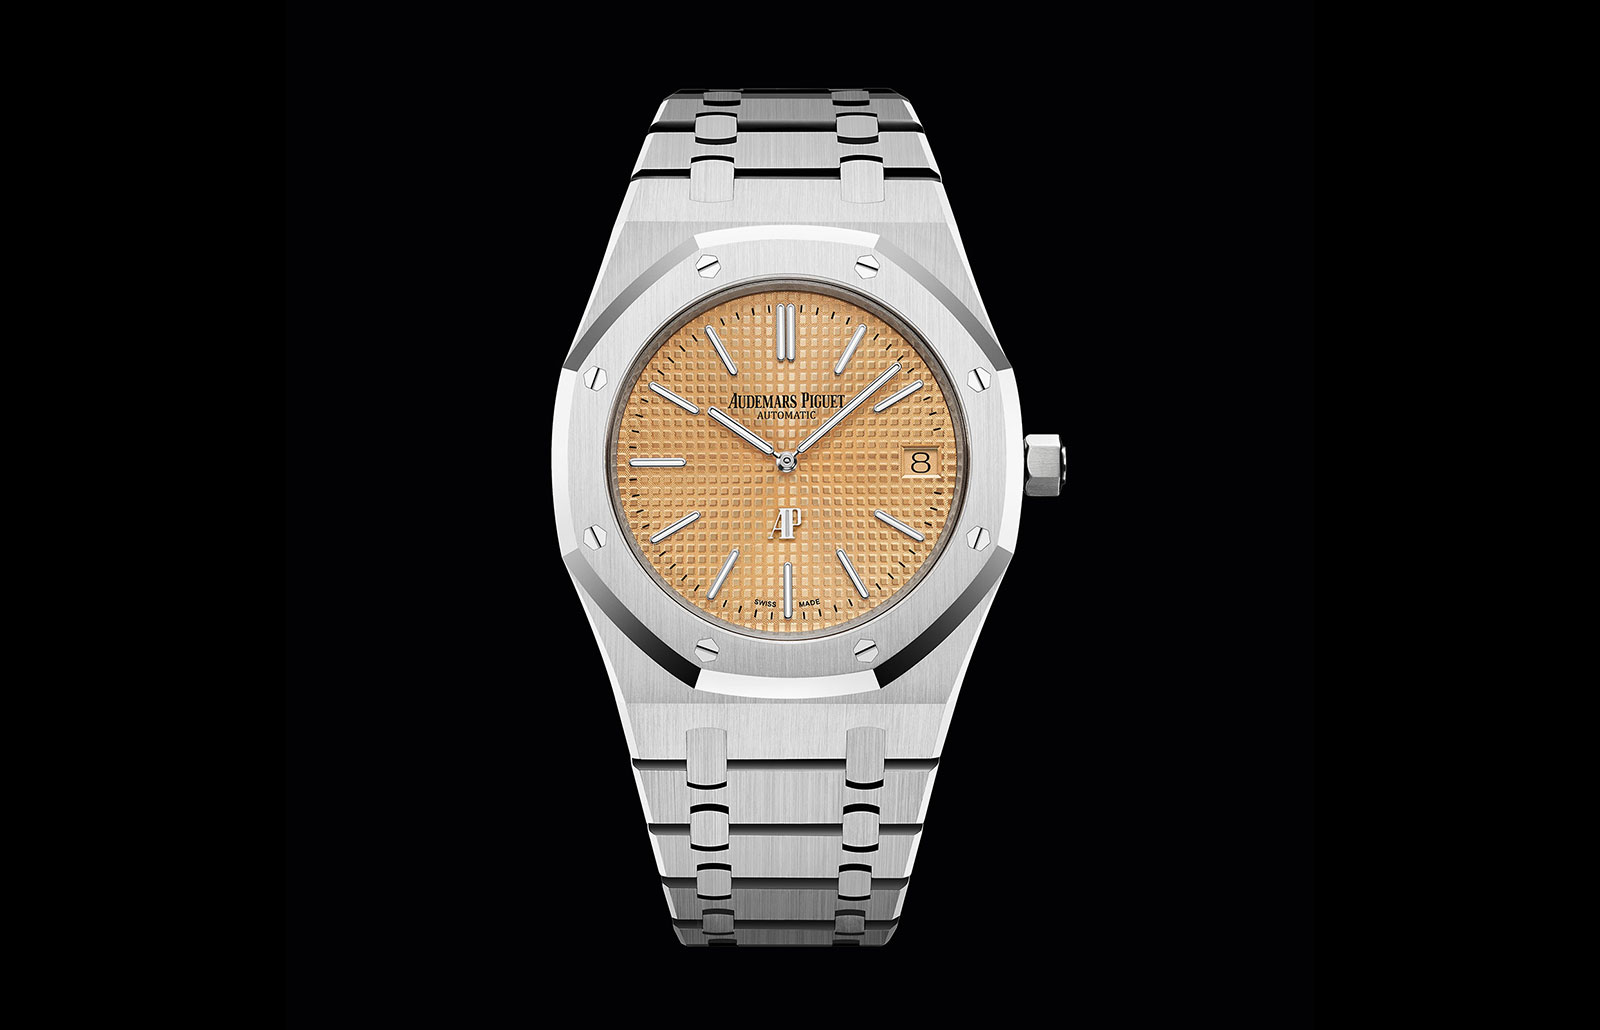 Audemars-Piguet-Royal-Oak-Extra-Thin-15202-salmon